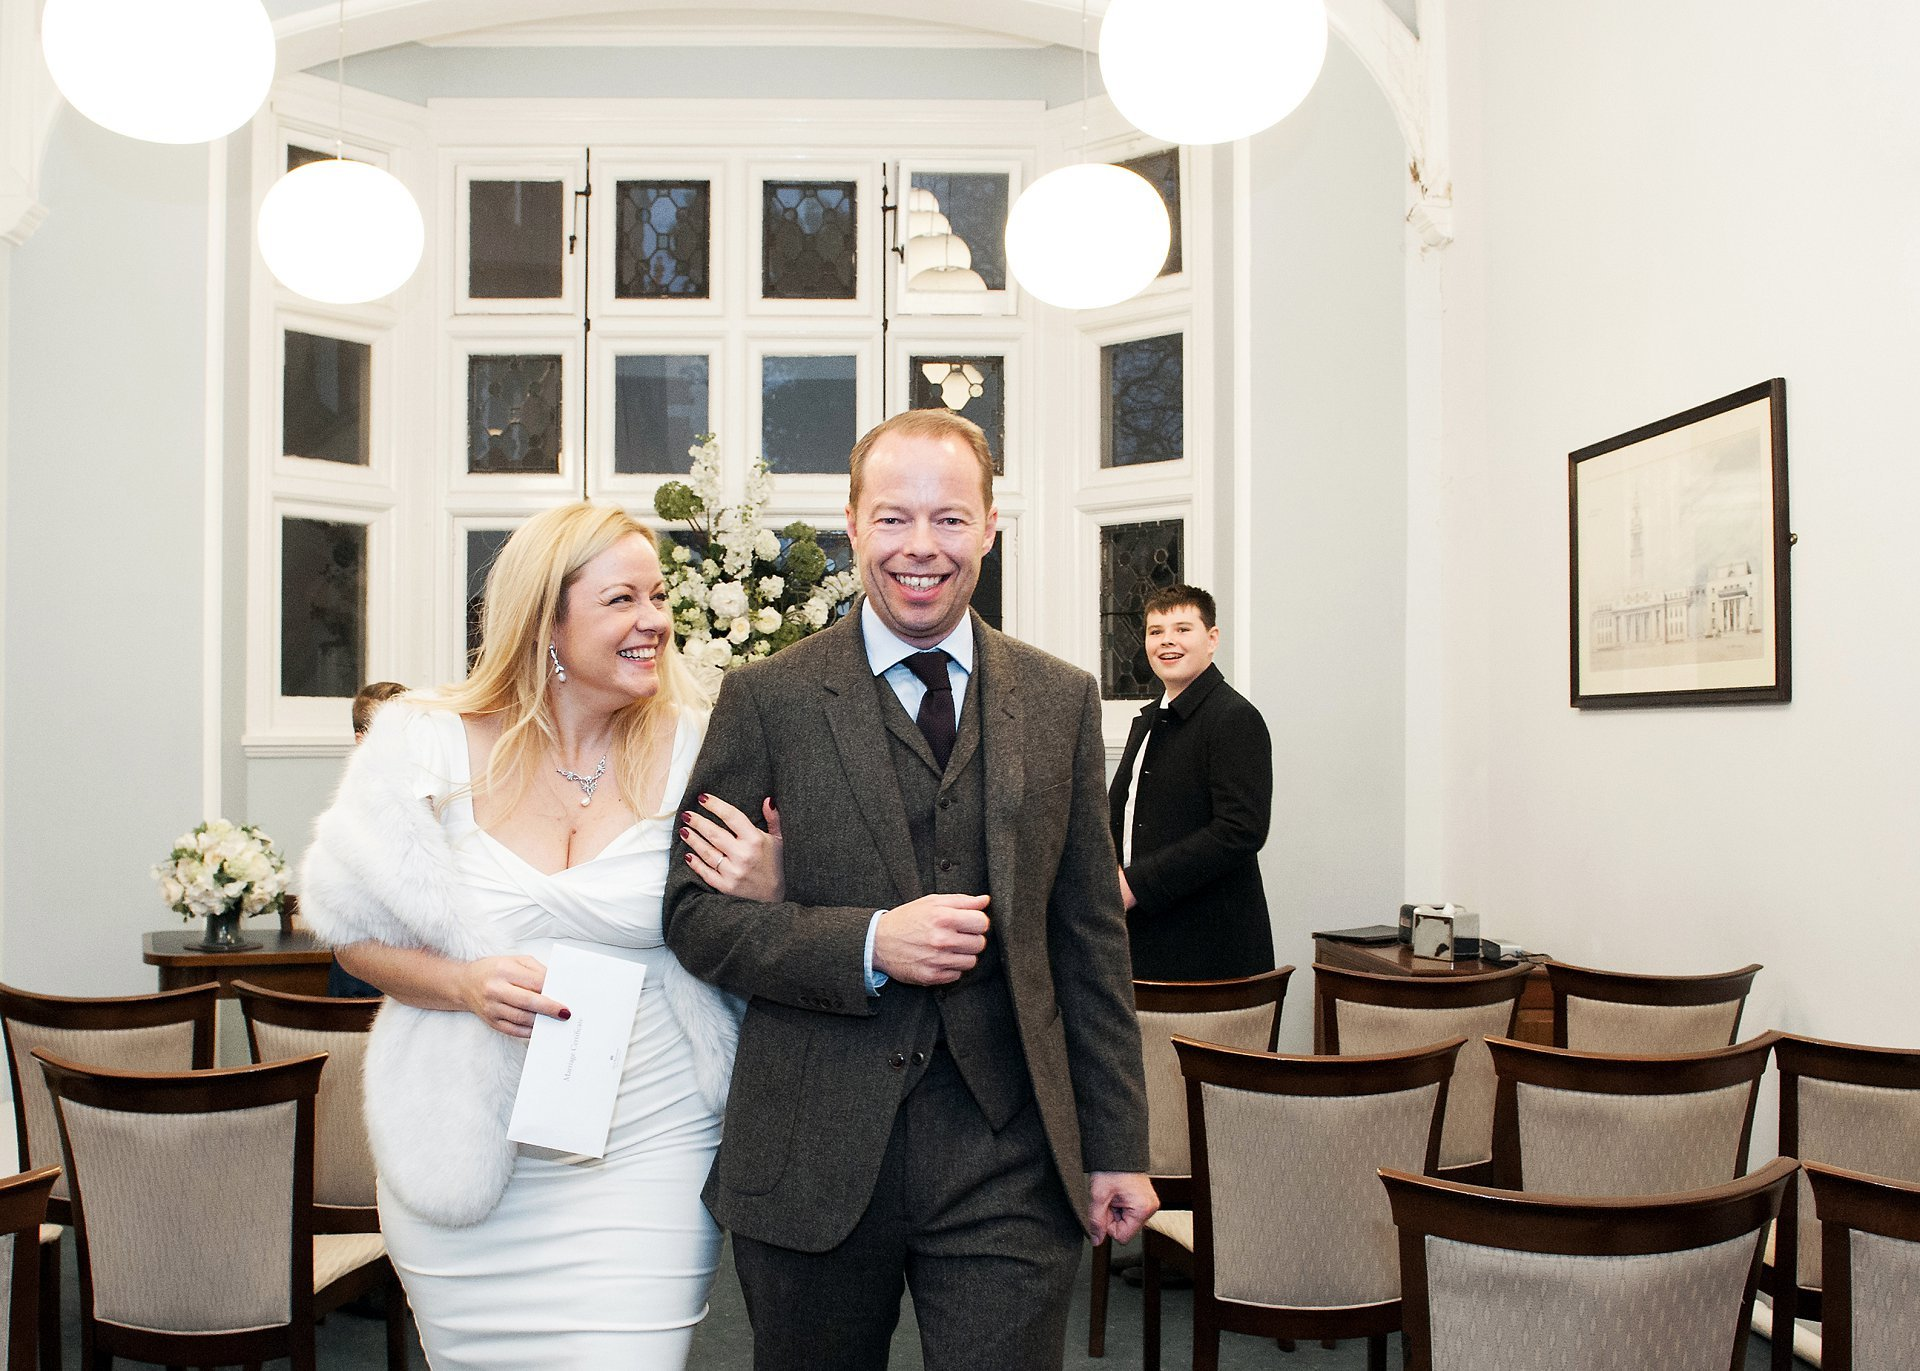 Westminster Register Office Christmas wedding in Mayfair Library's Marylebone Room with just two guests present and the photographer being one of the witnesses, along with the librarian